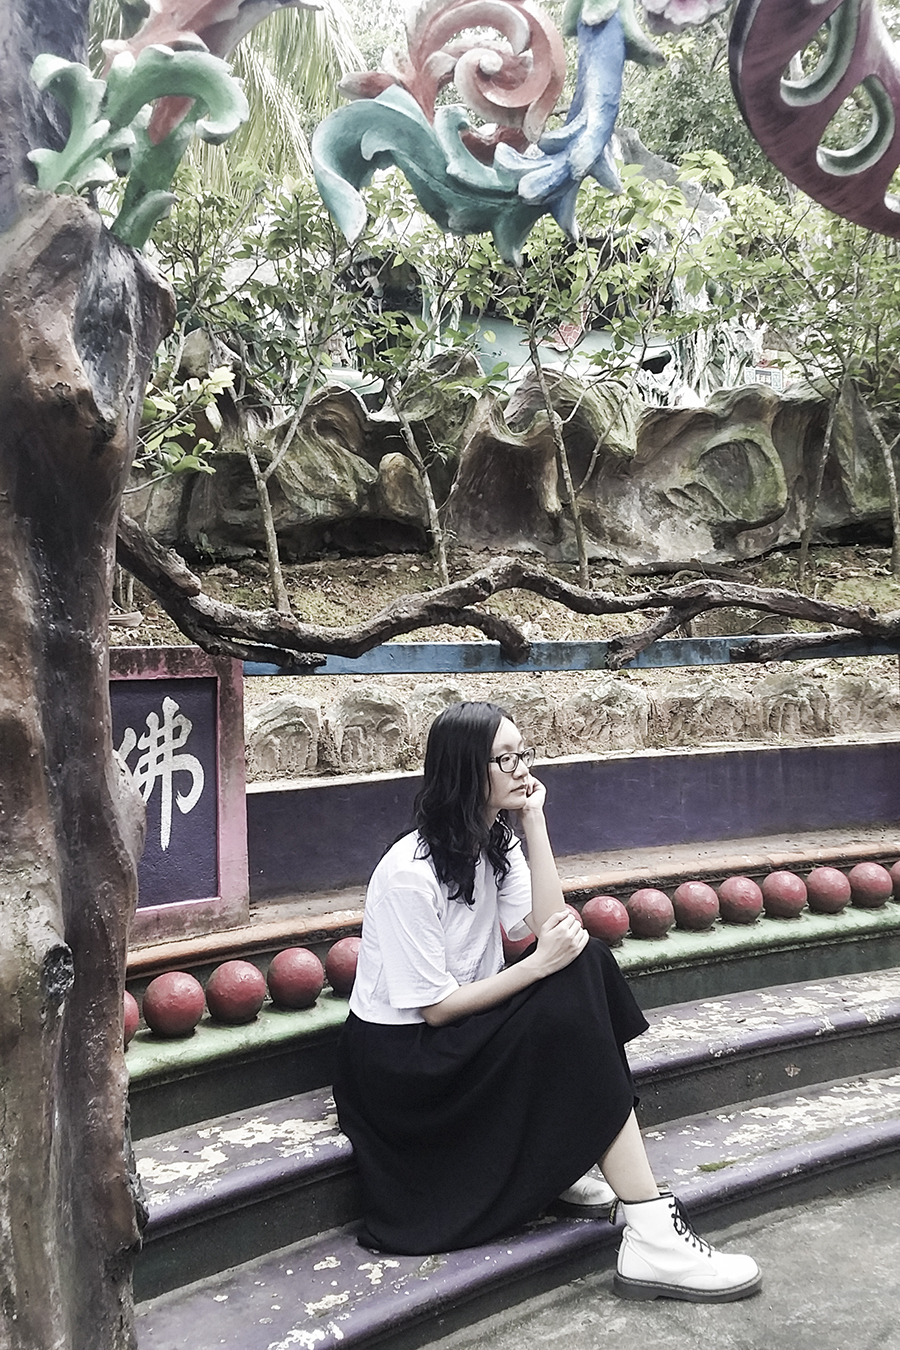 OOTD at Haw Par Villa, Singapore. Wearing white textured crop top from Bec & Bridge, black midi skirt from Lowry's Farm, white 1460 8-eye boots from Dr. Martens, black frame glasses from Gap.